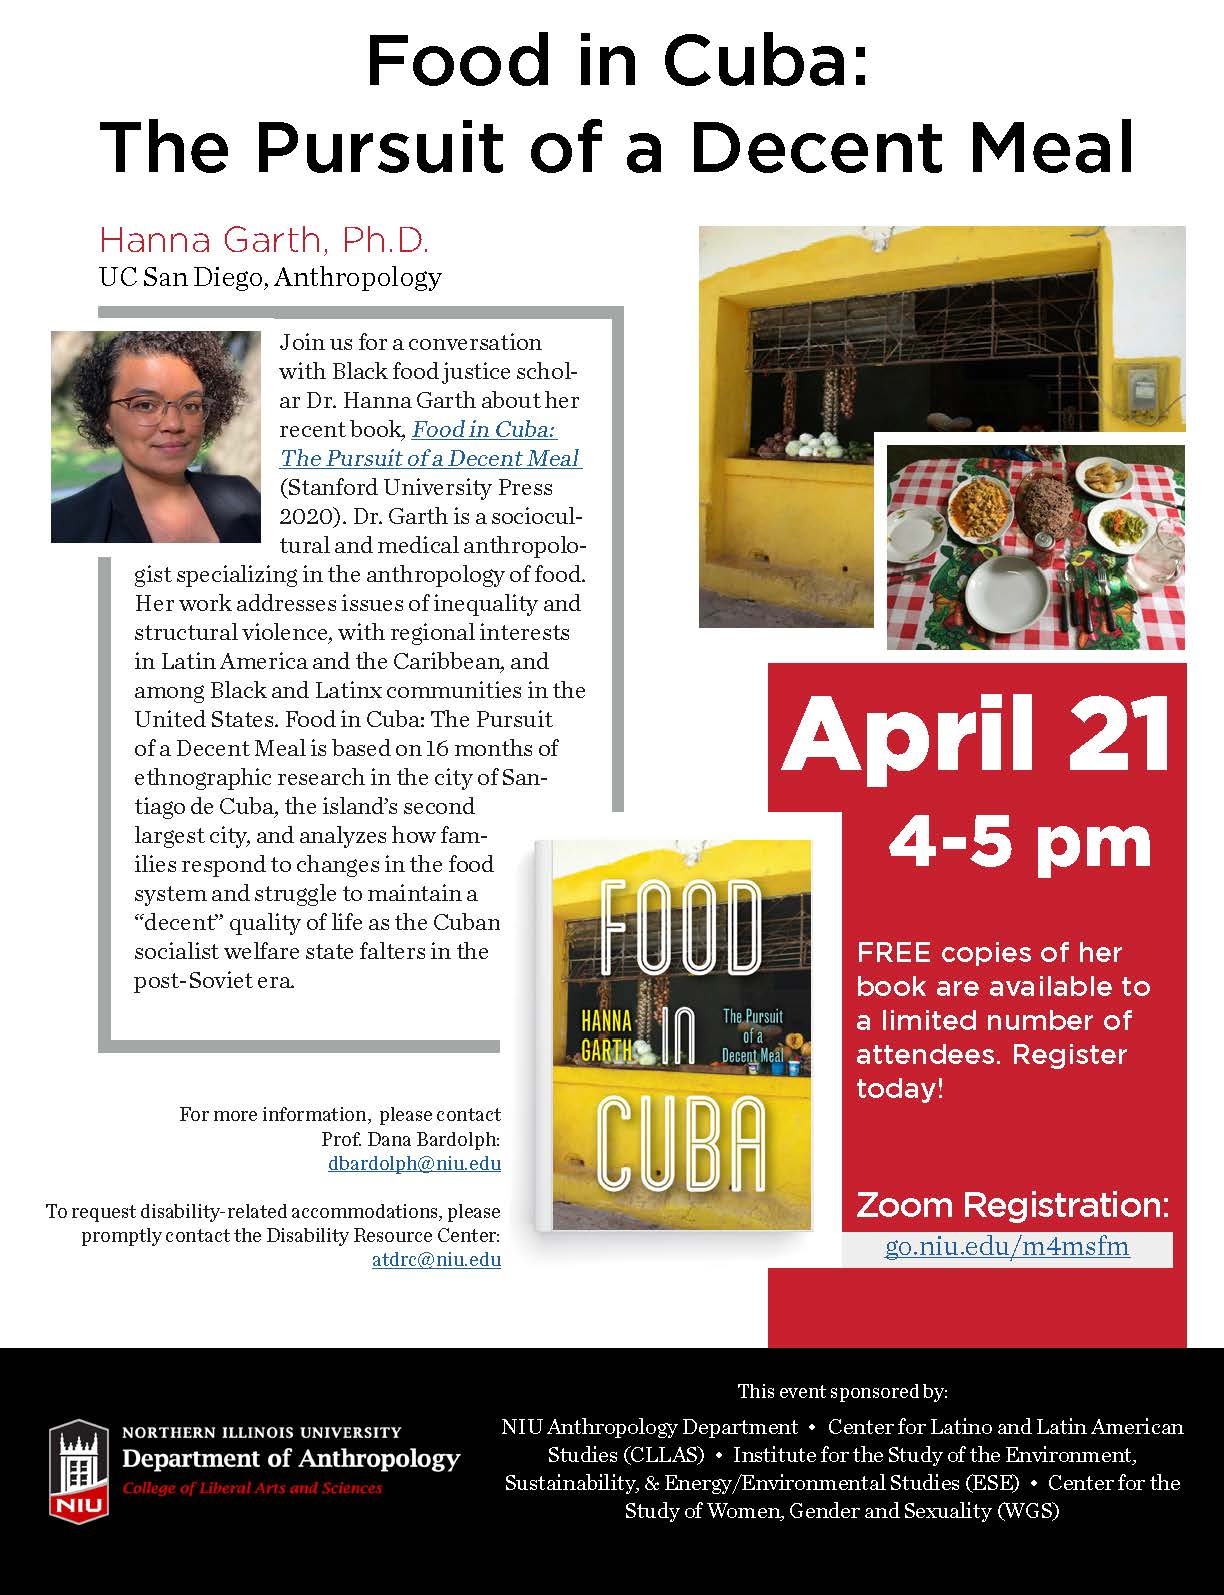 Dr. Hanna Garth – Food in Cuba: The Pursuit of a Decent Meal